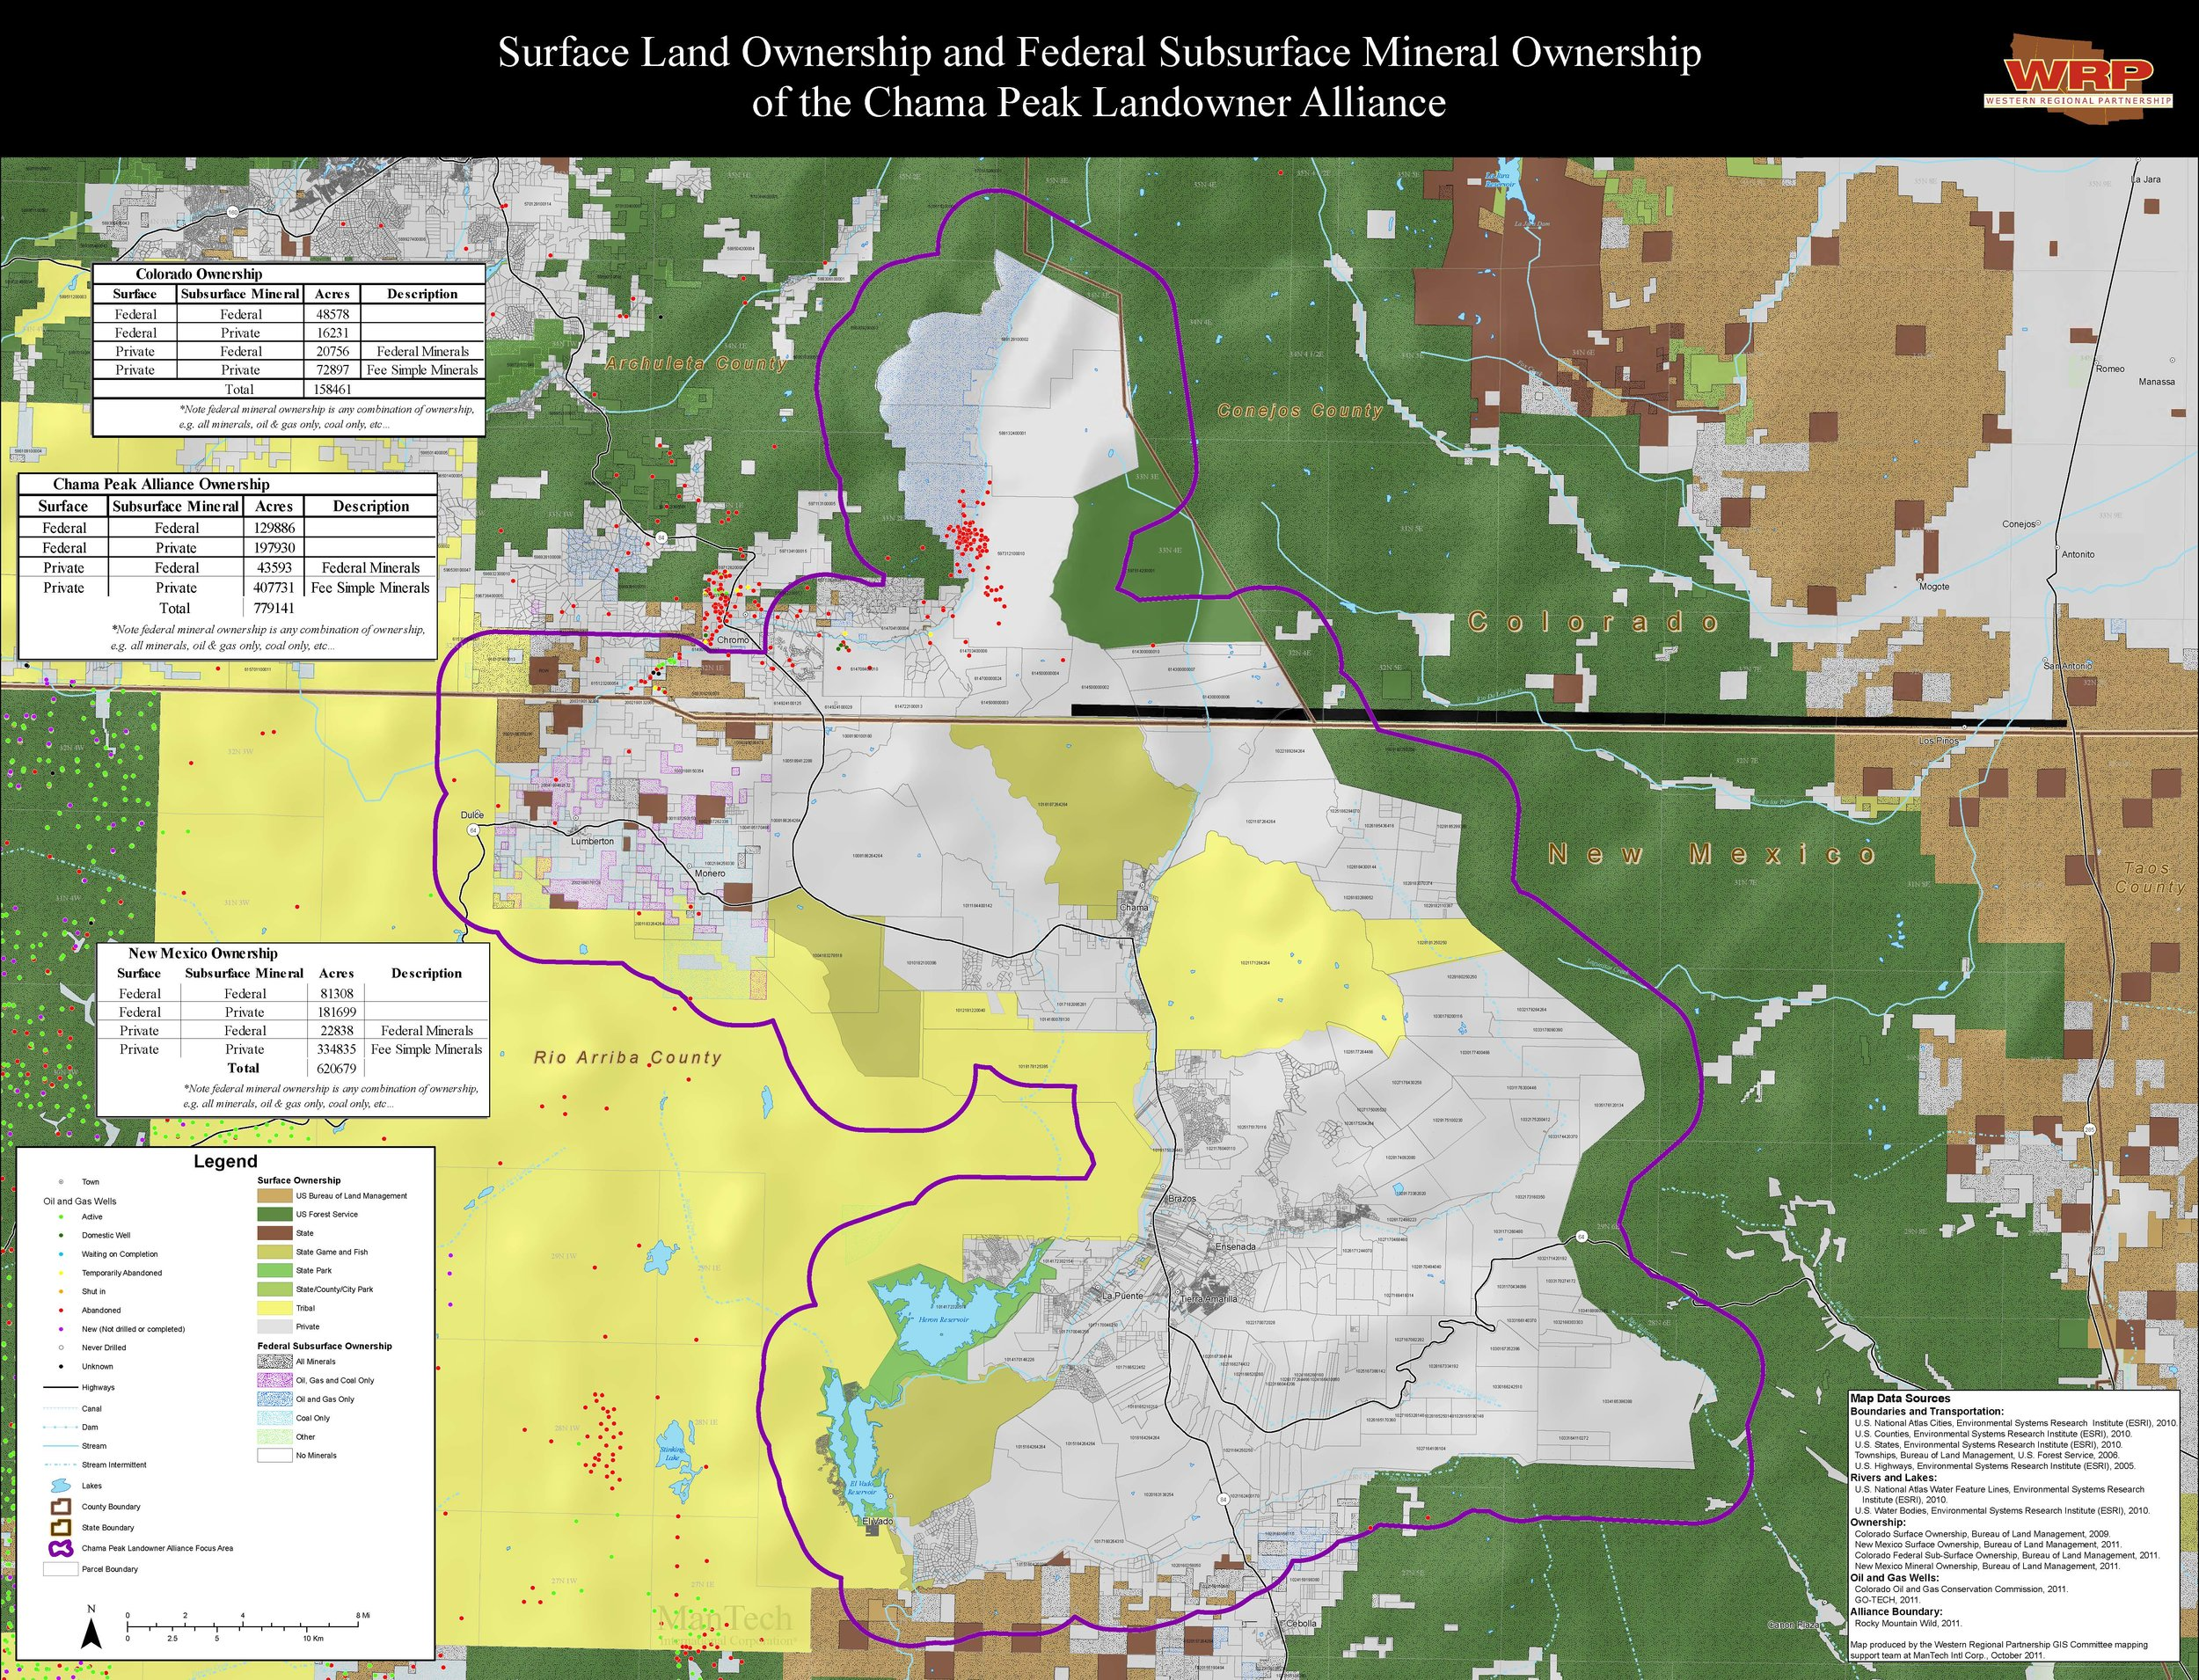 Surface and mineral ownership in the Alliance region, courtesy of the Western Regional Partnership.